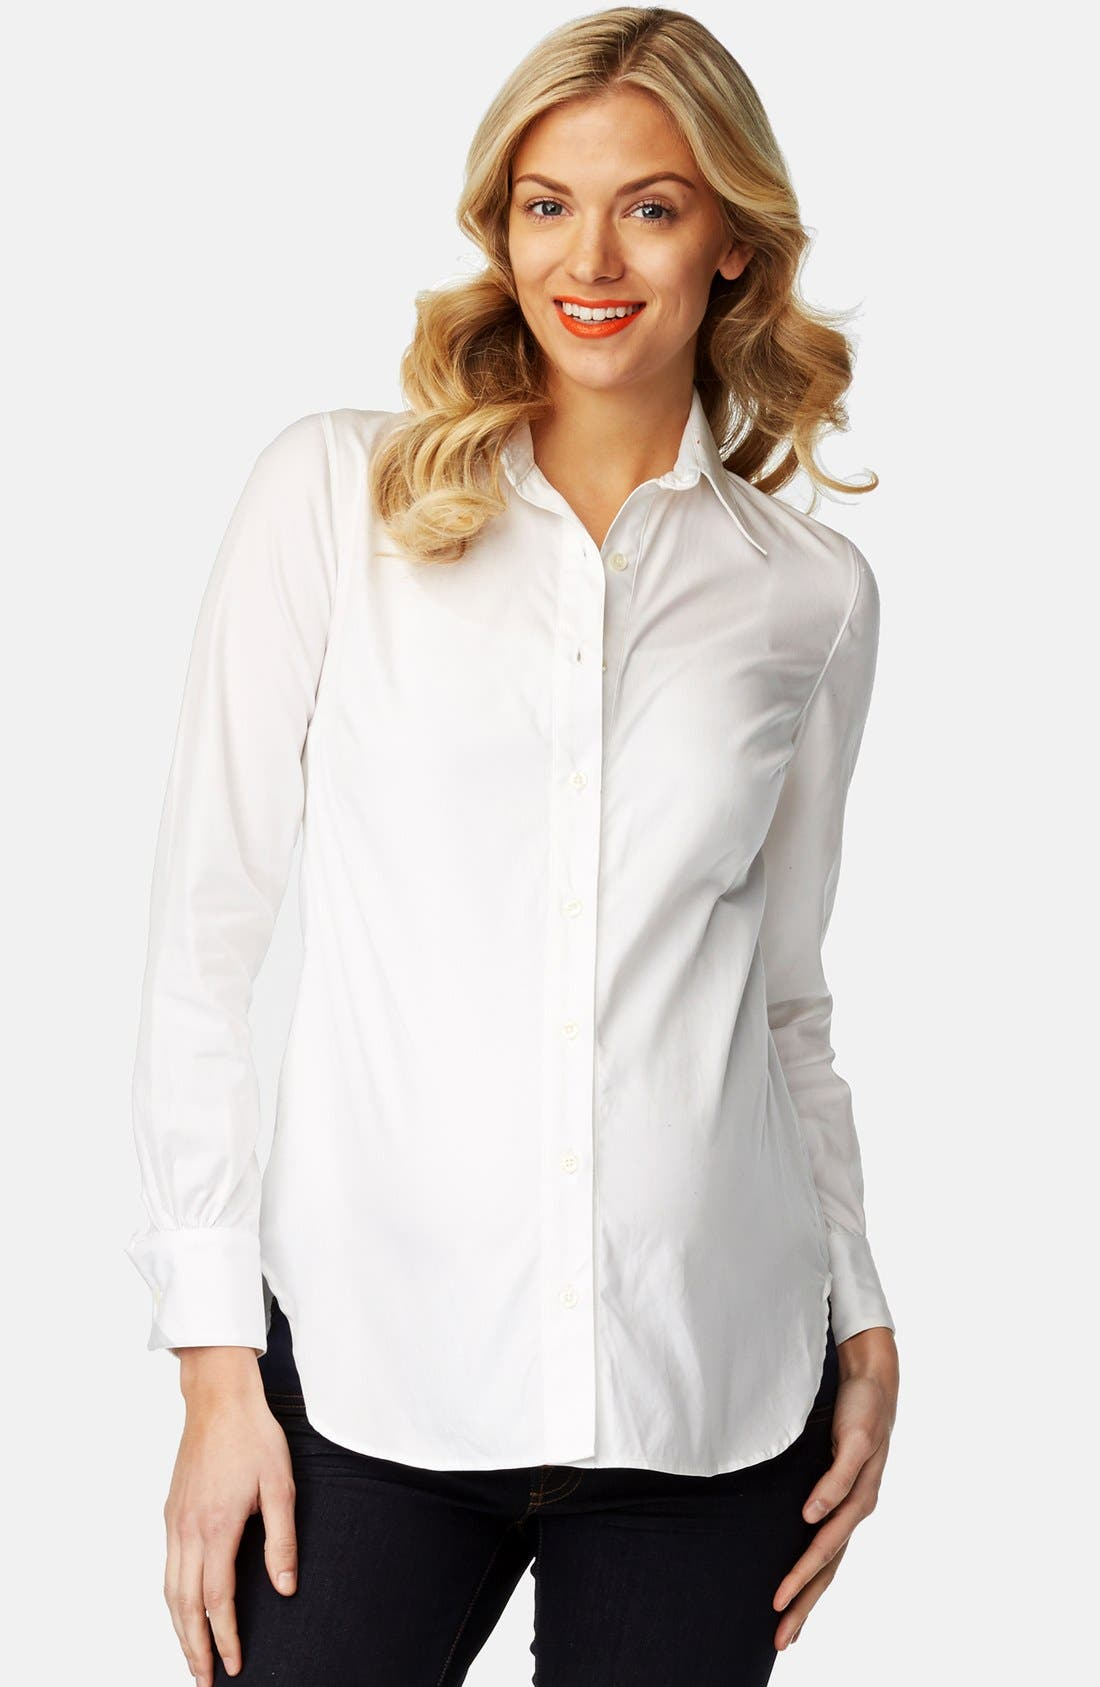 Alternate Image 1 Selected - Rosie Pope 'Classic' Maternity Shirt